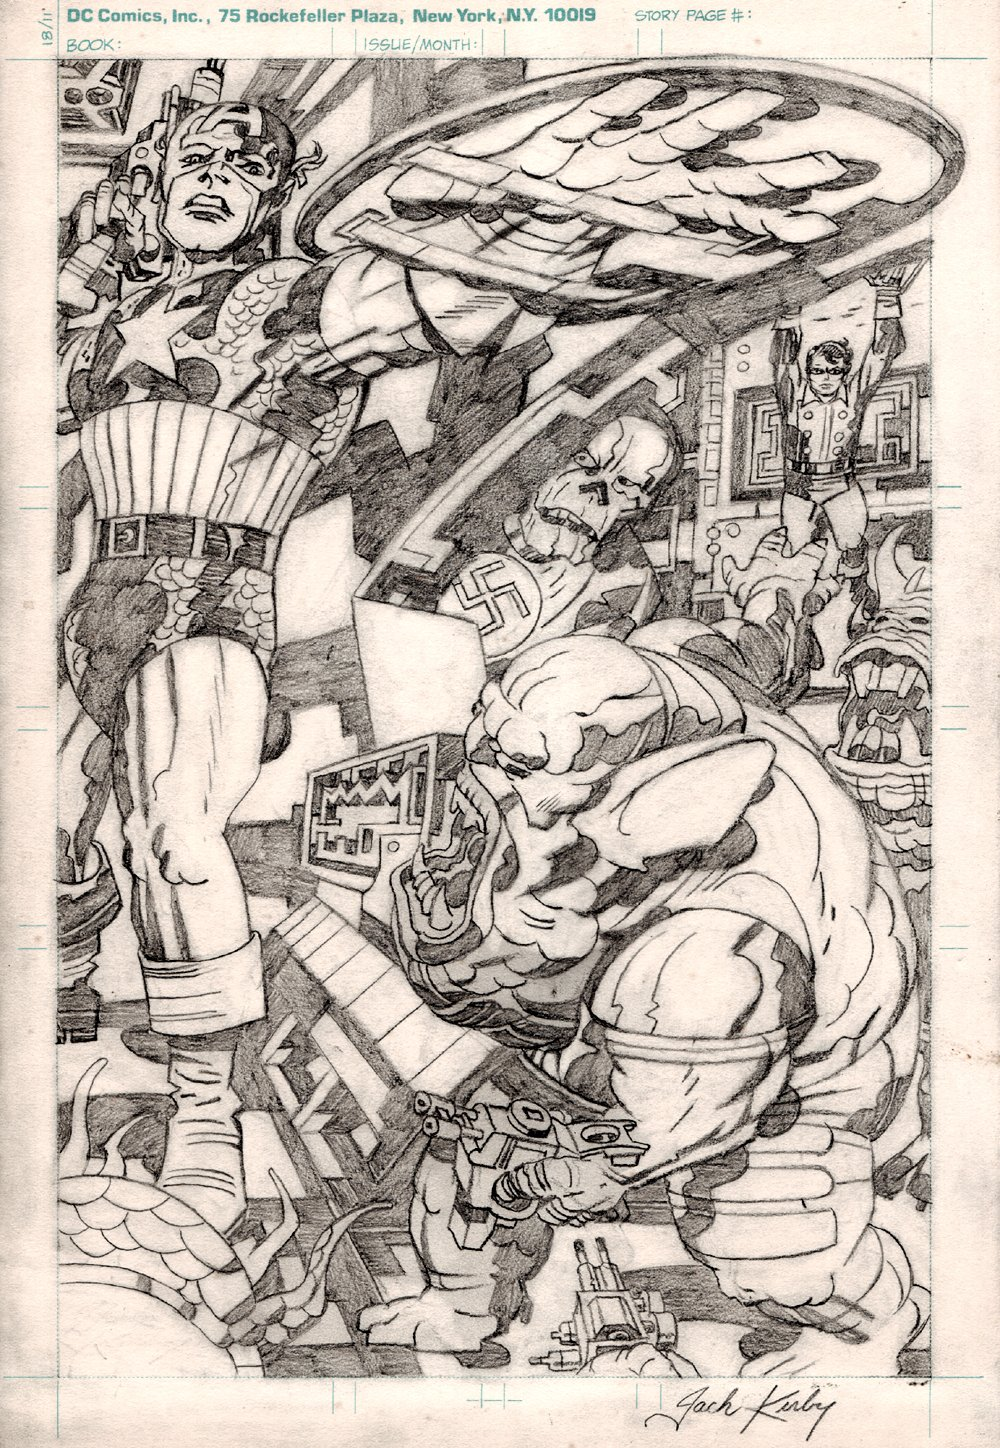 Jack Kirby Collector #3 Back Cover (Captain America, Bucky, Red Skull Wearing Donald Trump Shirt Also!) 1970s